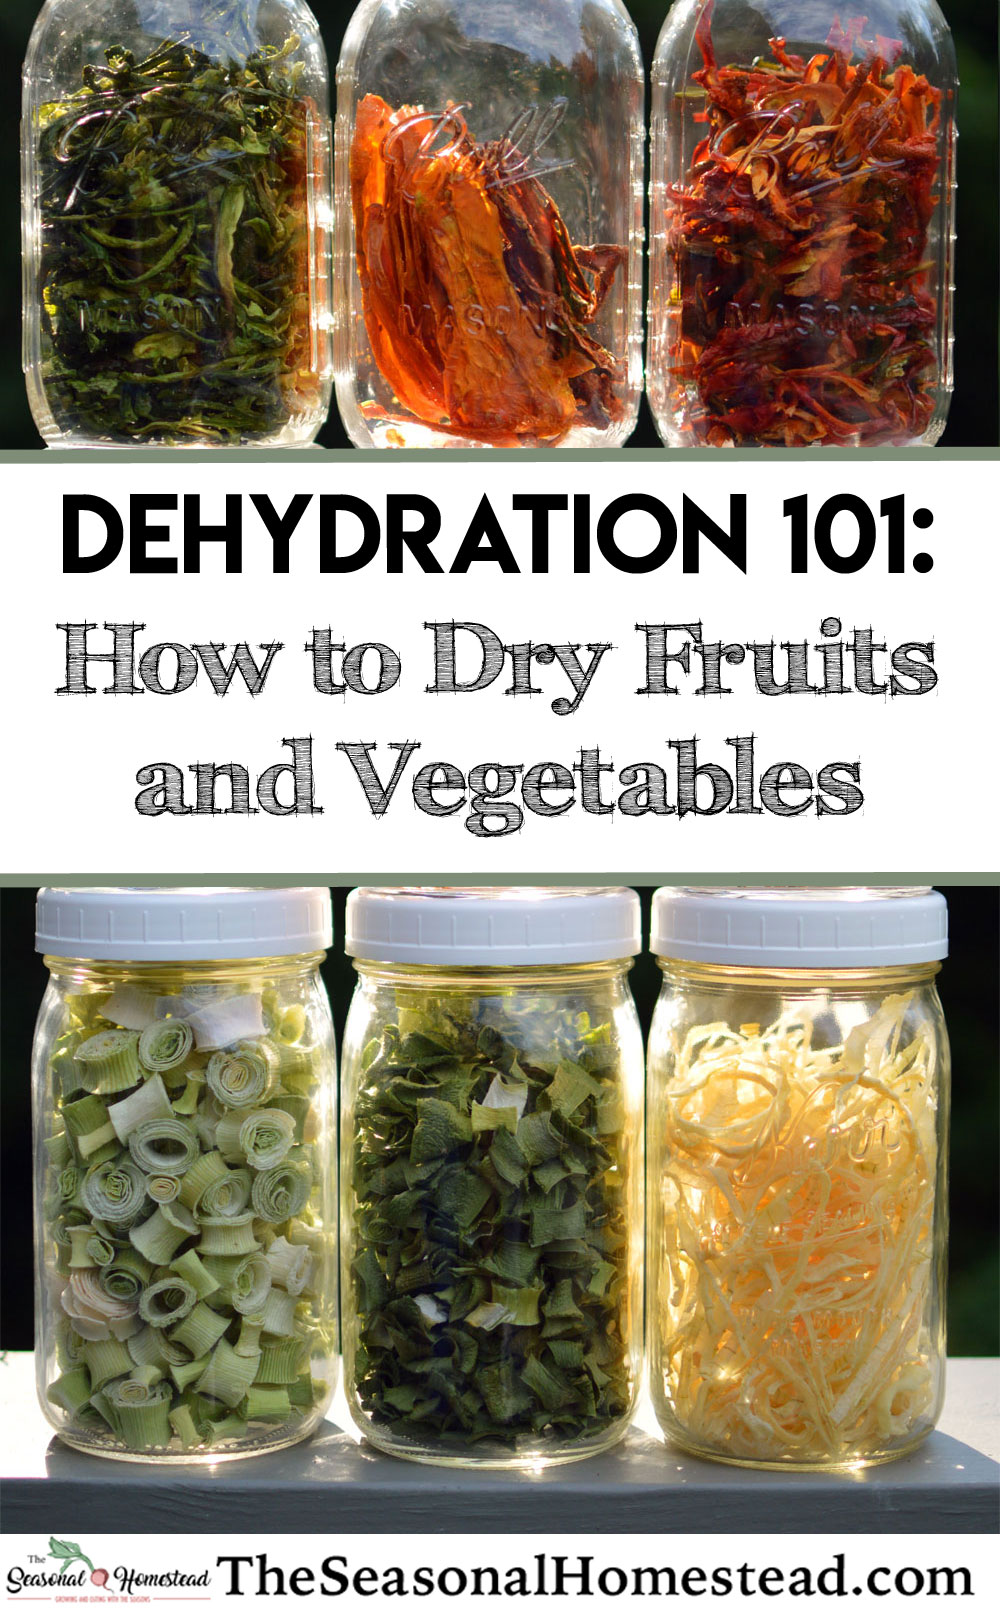 How-to-Dry-Fruits-and-Vegetables.jpg